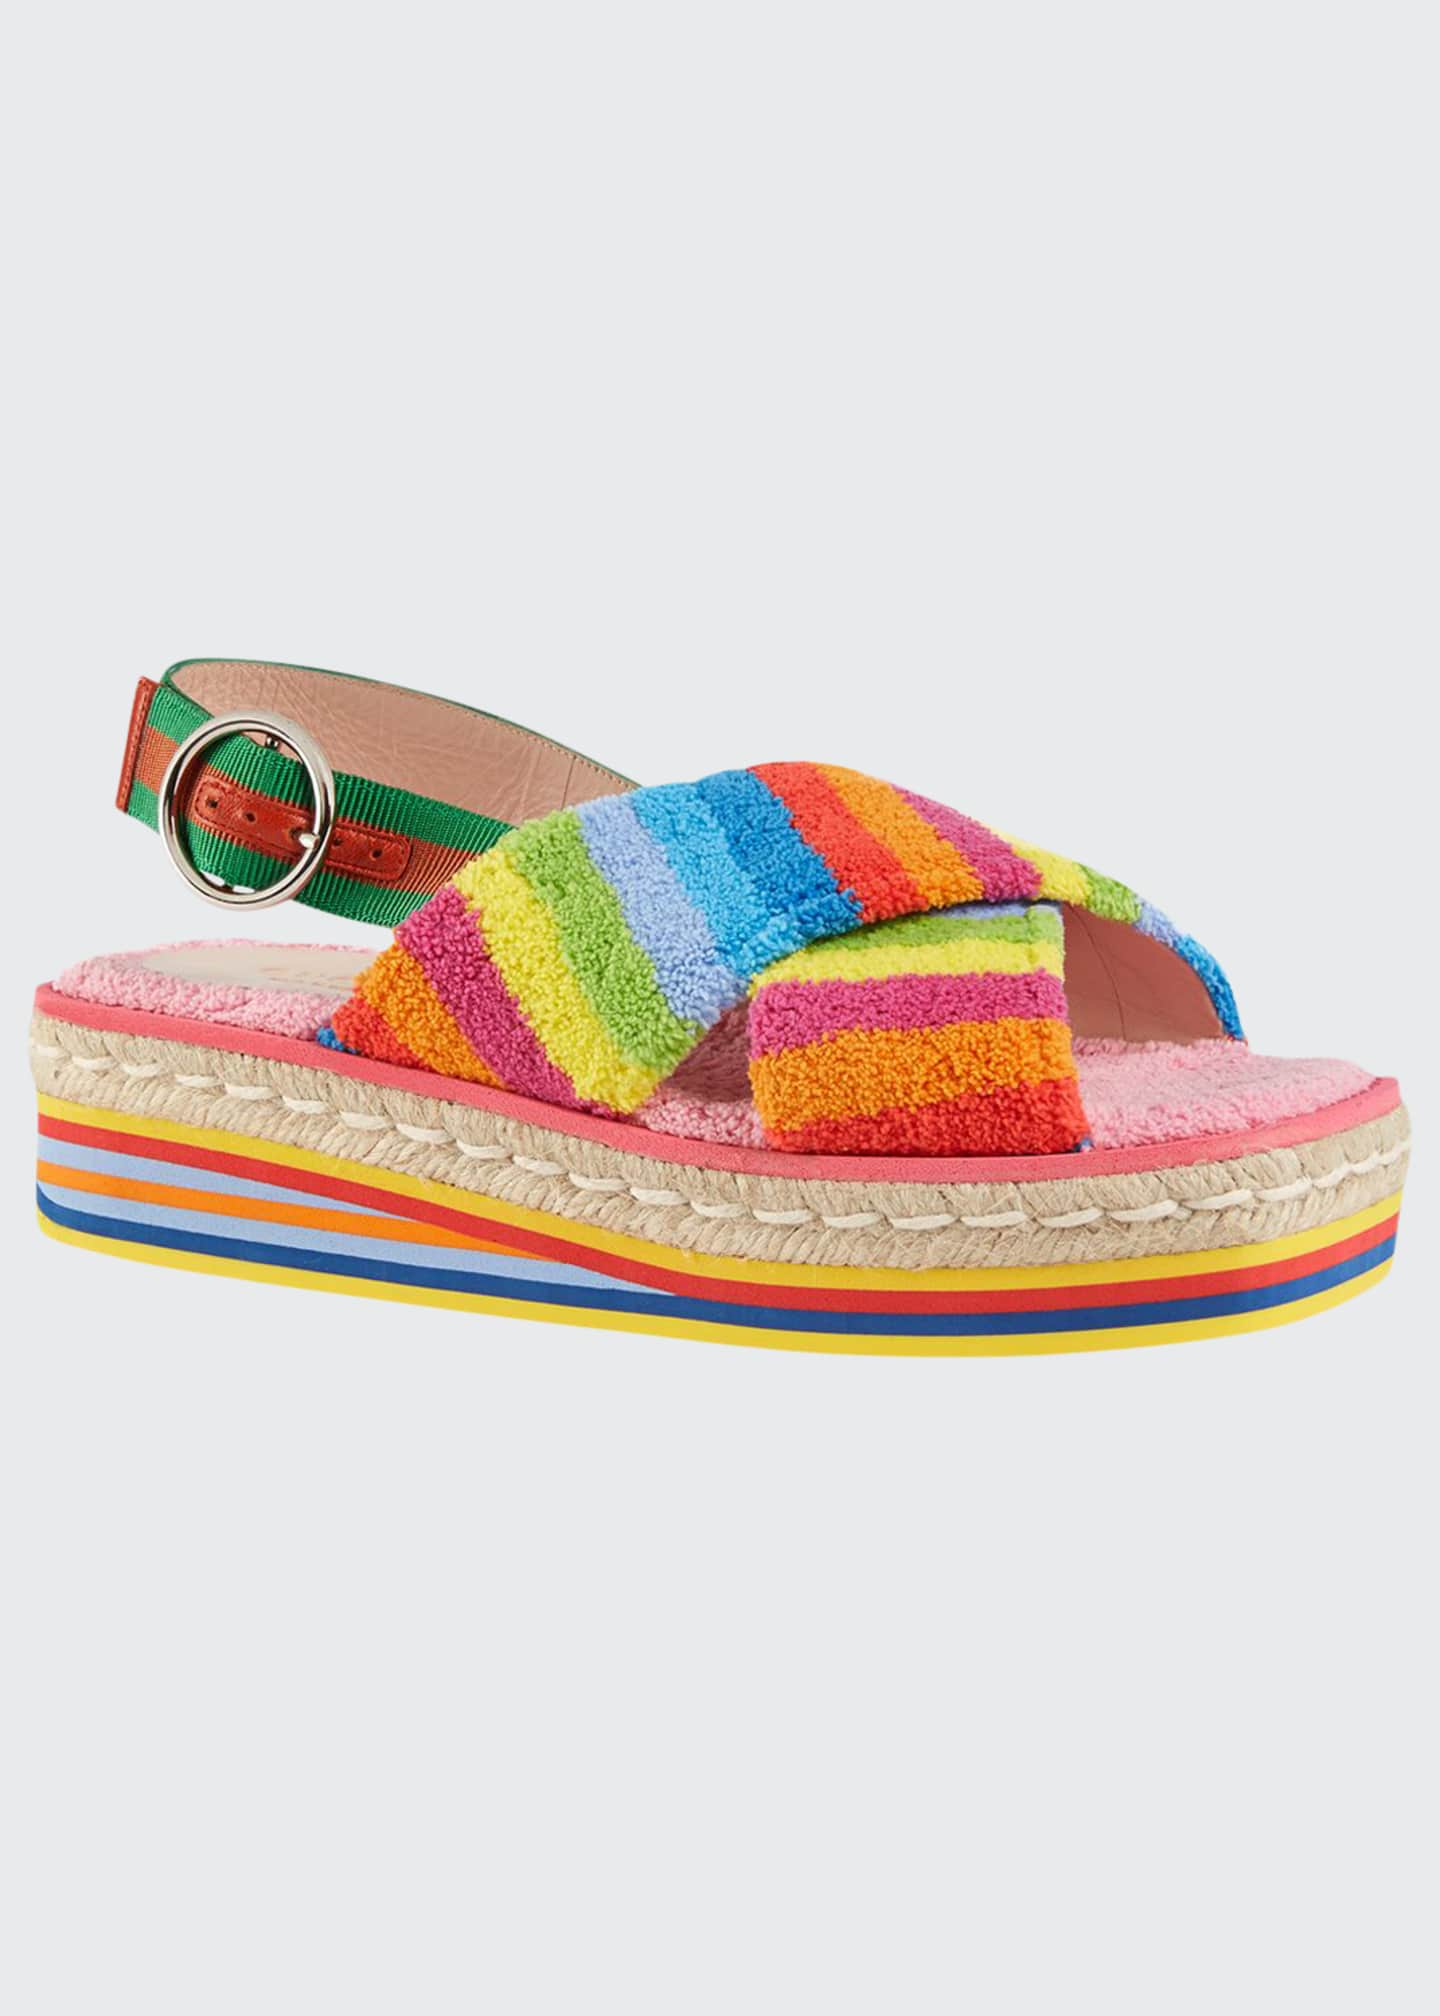 Gucci Huma 50mm Rainbow Sponge Wedge Sandals